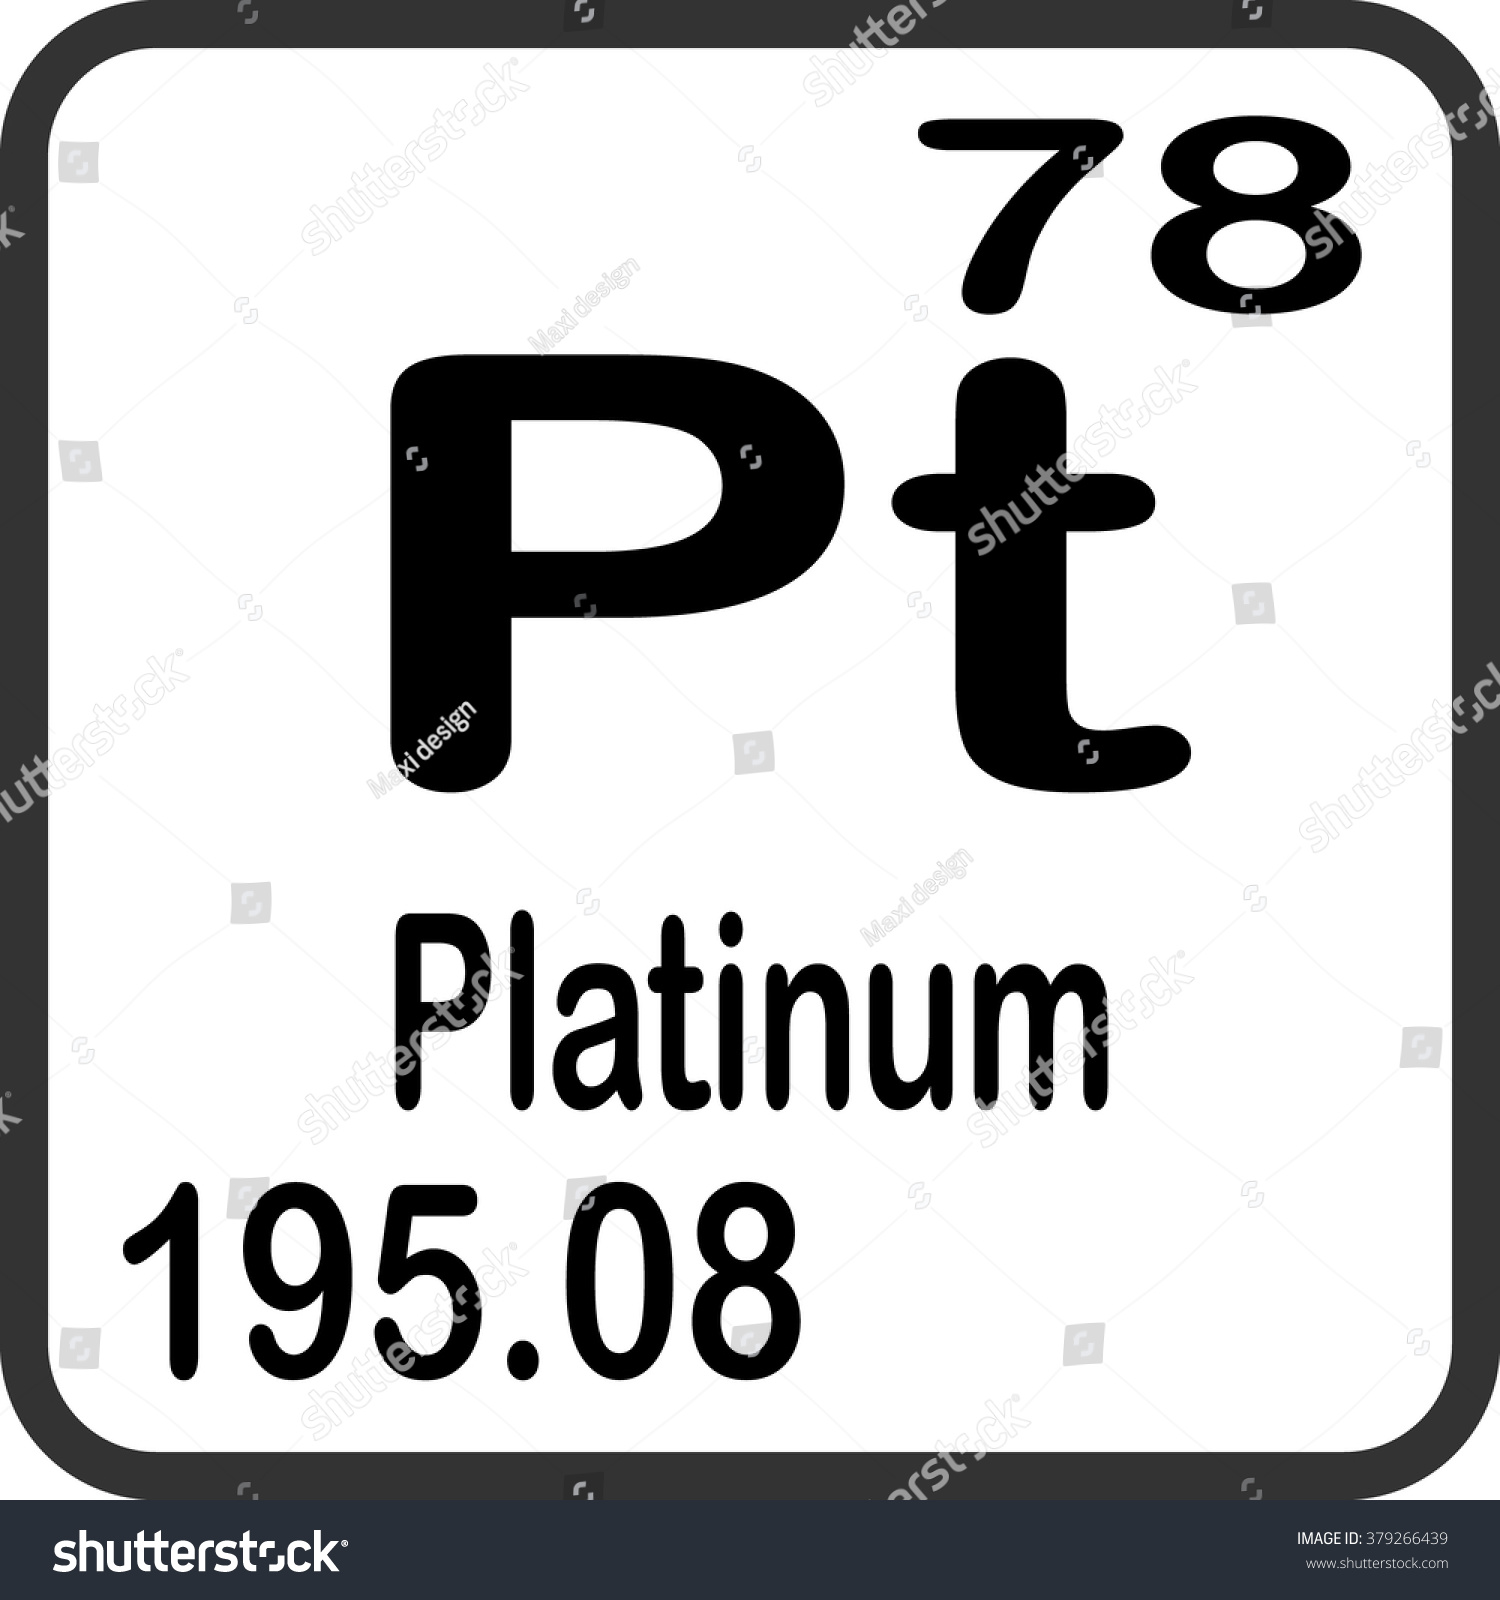 Symbol for platinum on periodic table image collections periodic platinum on the periodic table image collections periodic table platinum periodic table image collections periodic table gamestrikefo Image collections